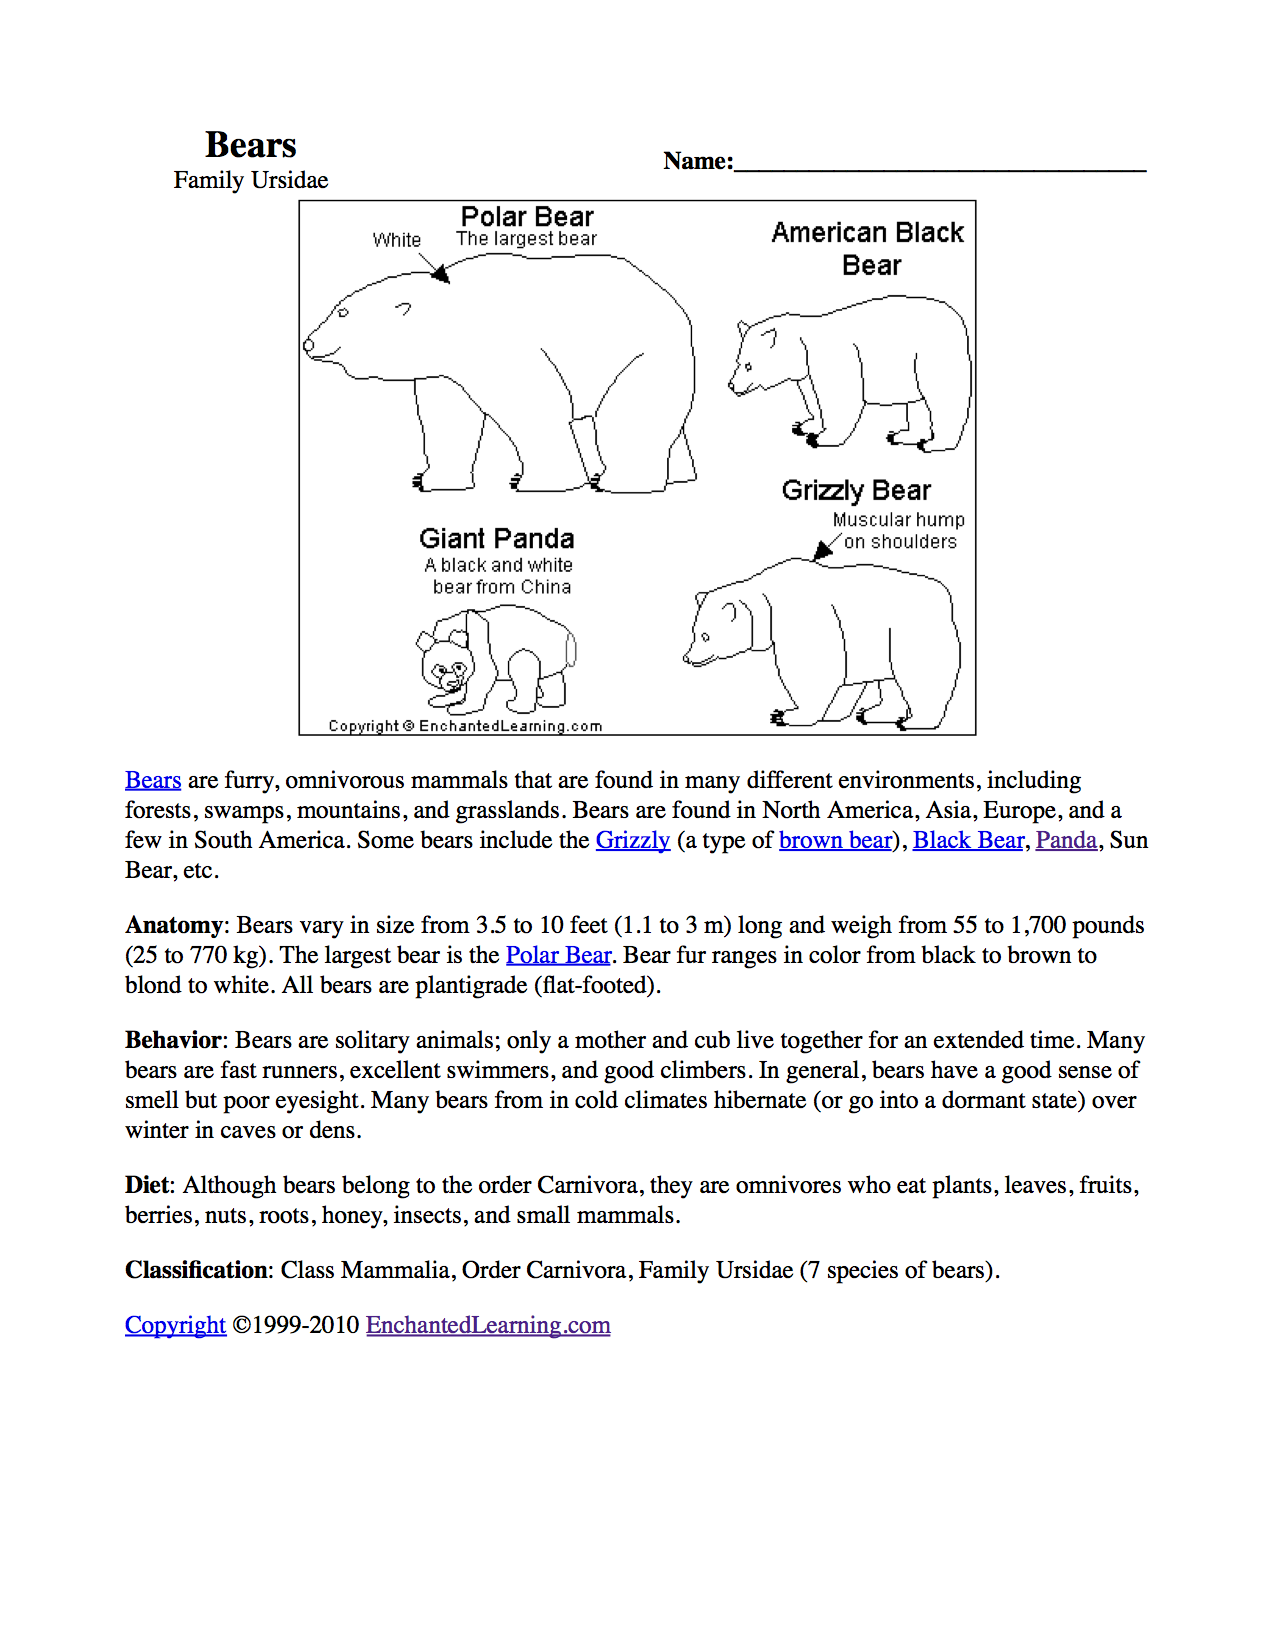 similiar panda bear life cycle coloring diagram keywords polar bear life cycle diagram for kids pandas at enchantedlearning com